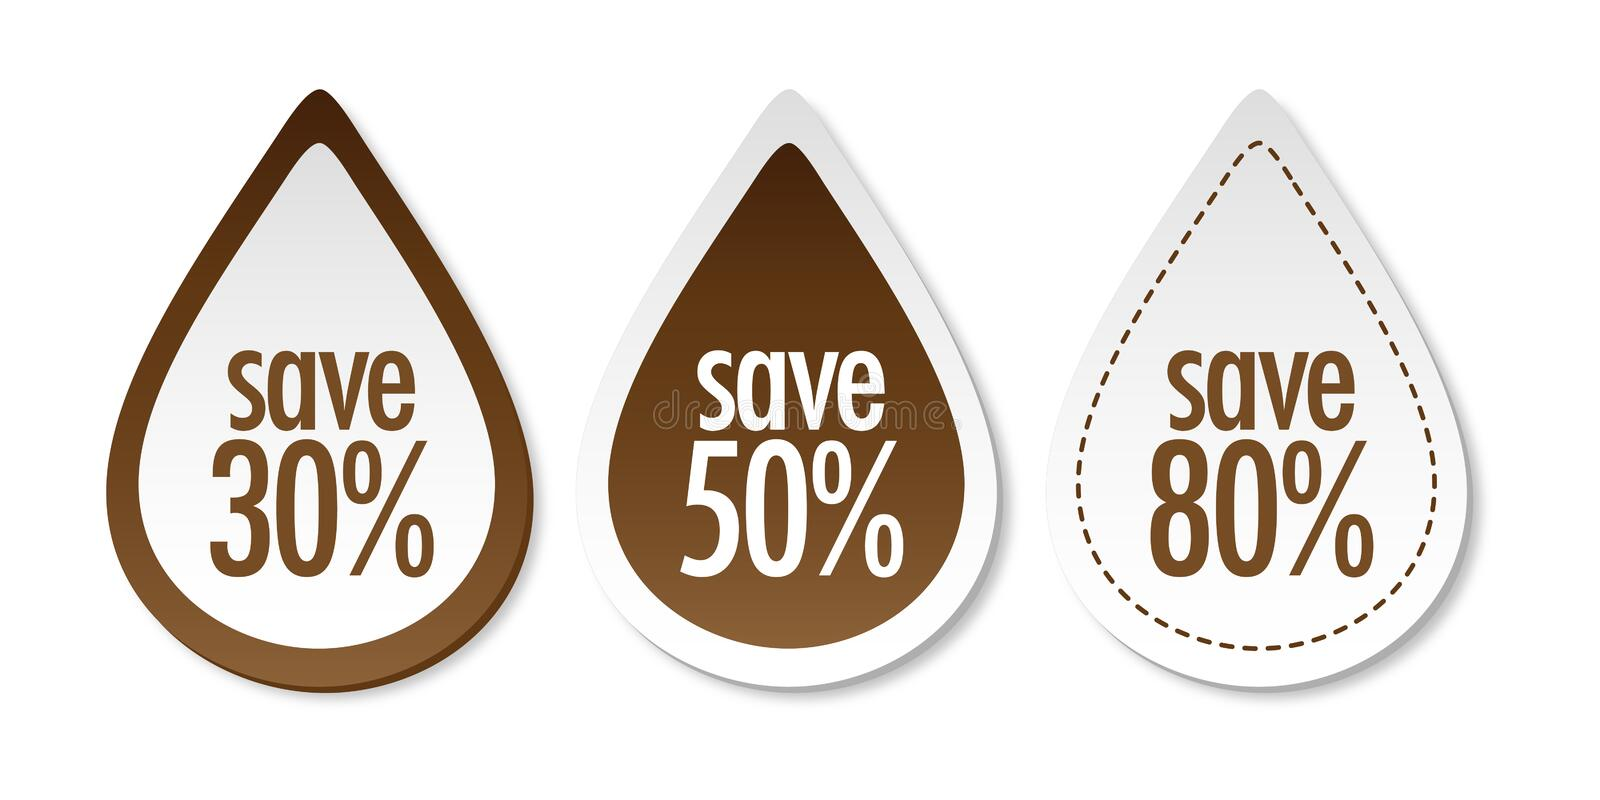 Save on brown stickers vector illustration